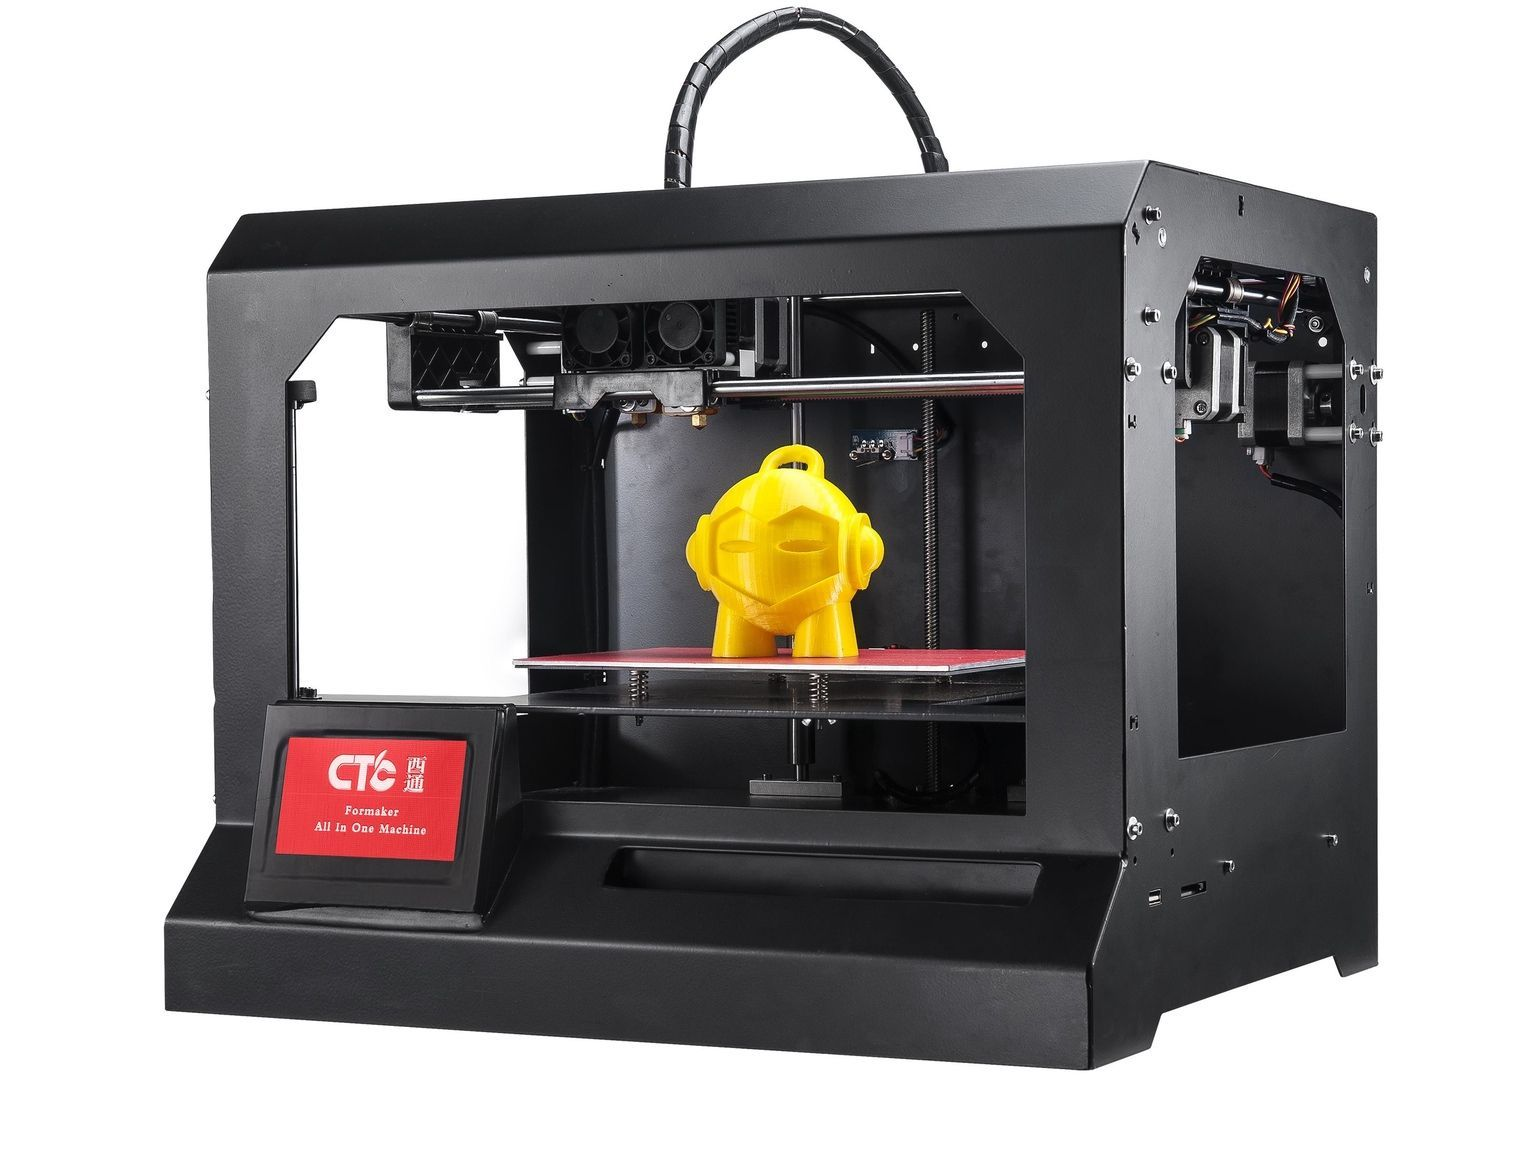 Ctc New Product Formaker 4 Functions Cnc Mill Pcb Engraving Laser Engraving And Dual Head 3 D Printer All In One Mac Printer 3d Printer 3d Printer Machine